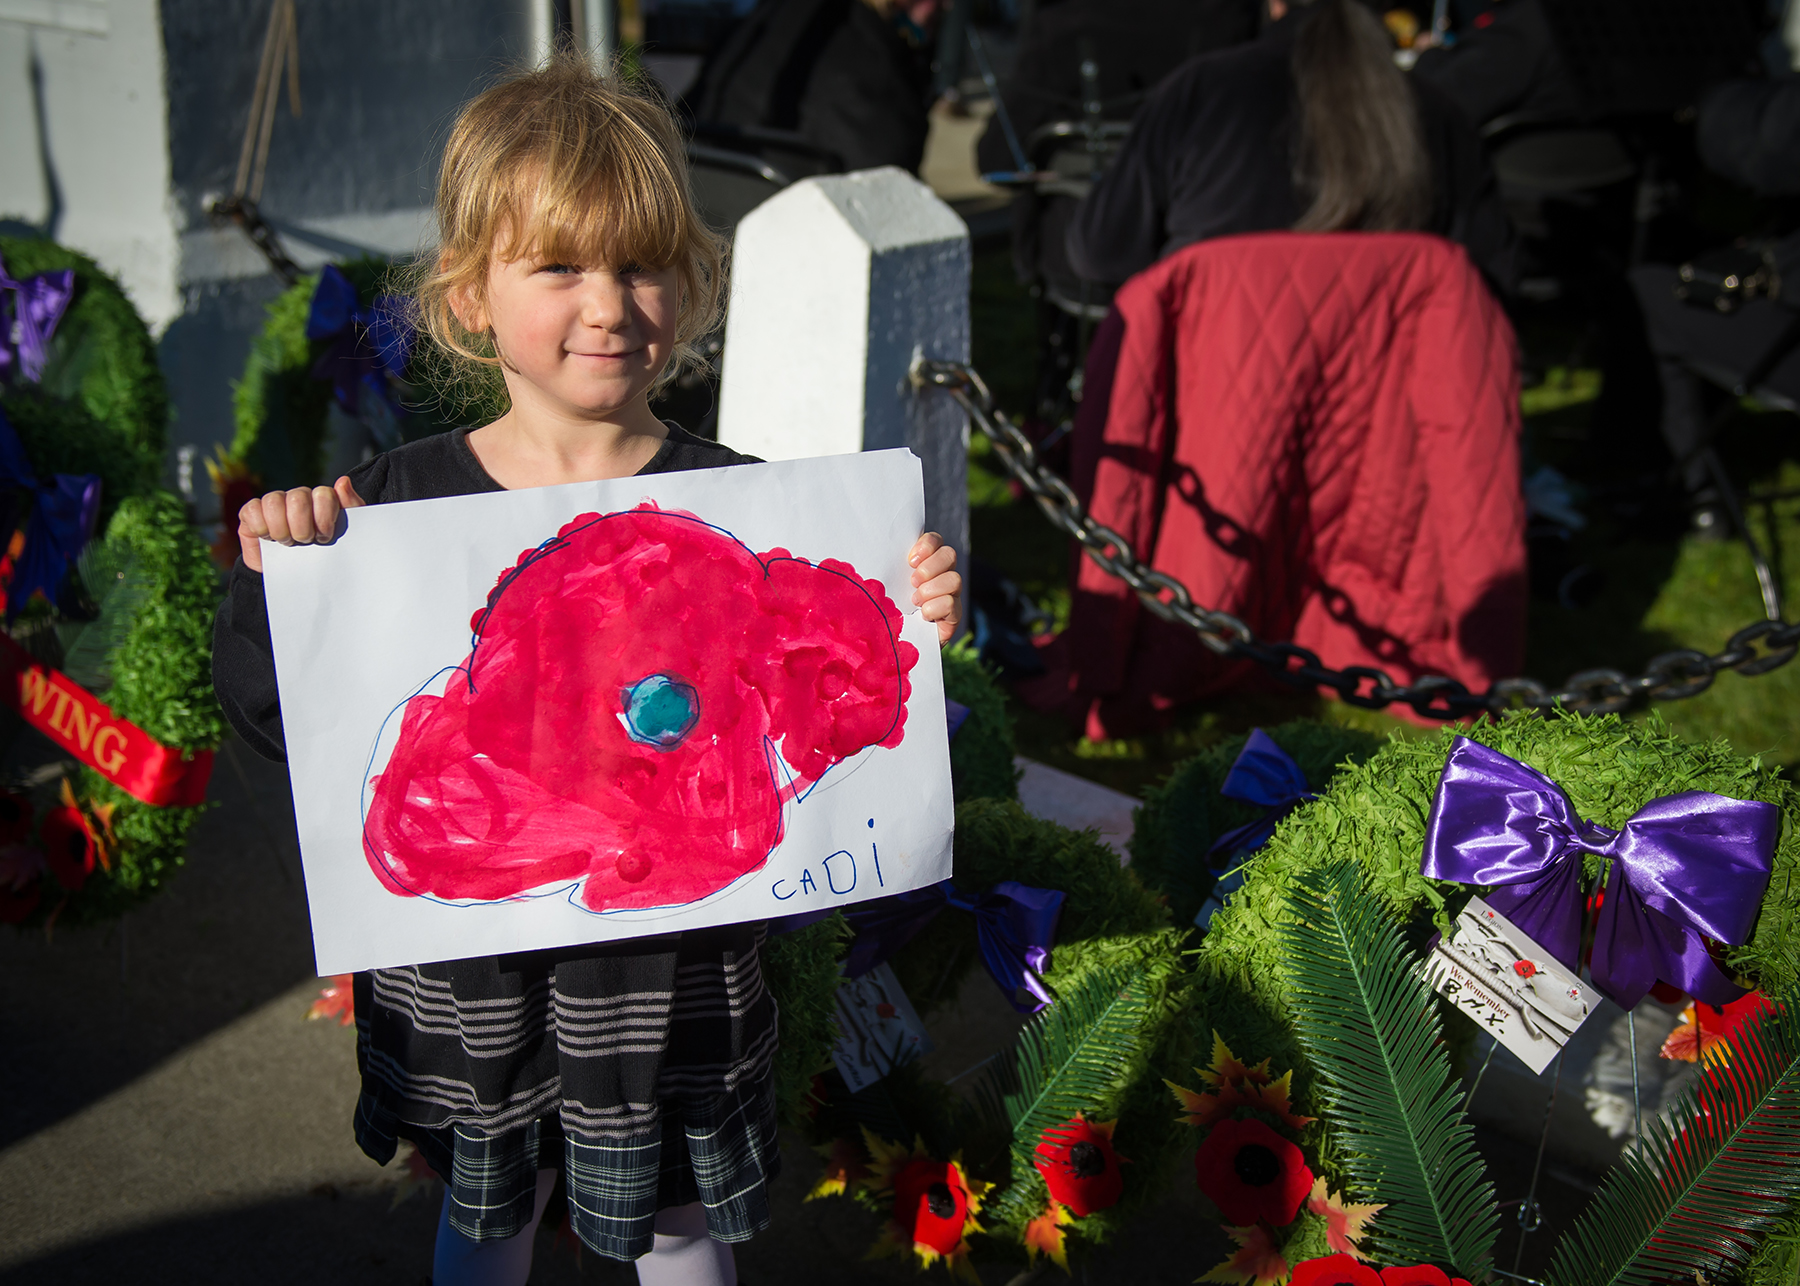 During the Remembrance Day ceremony held in the village of Cumberland, British Columbia, on November 11, 2015, Cadence Herron displays the drawing she made to commemorate Canadians who have fought and continue to fight for freedom. PHOTO: Corporal Pierre Létourneau